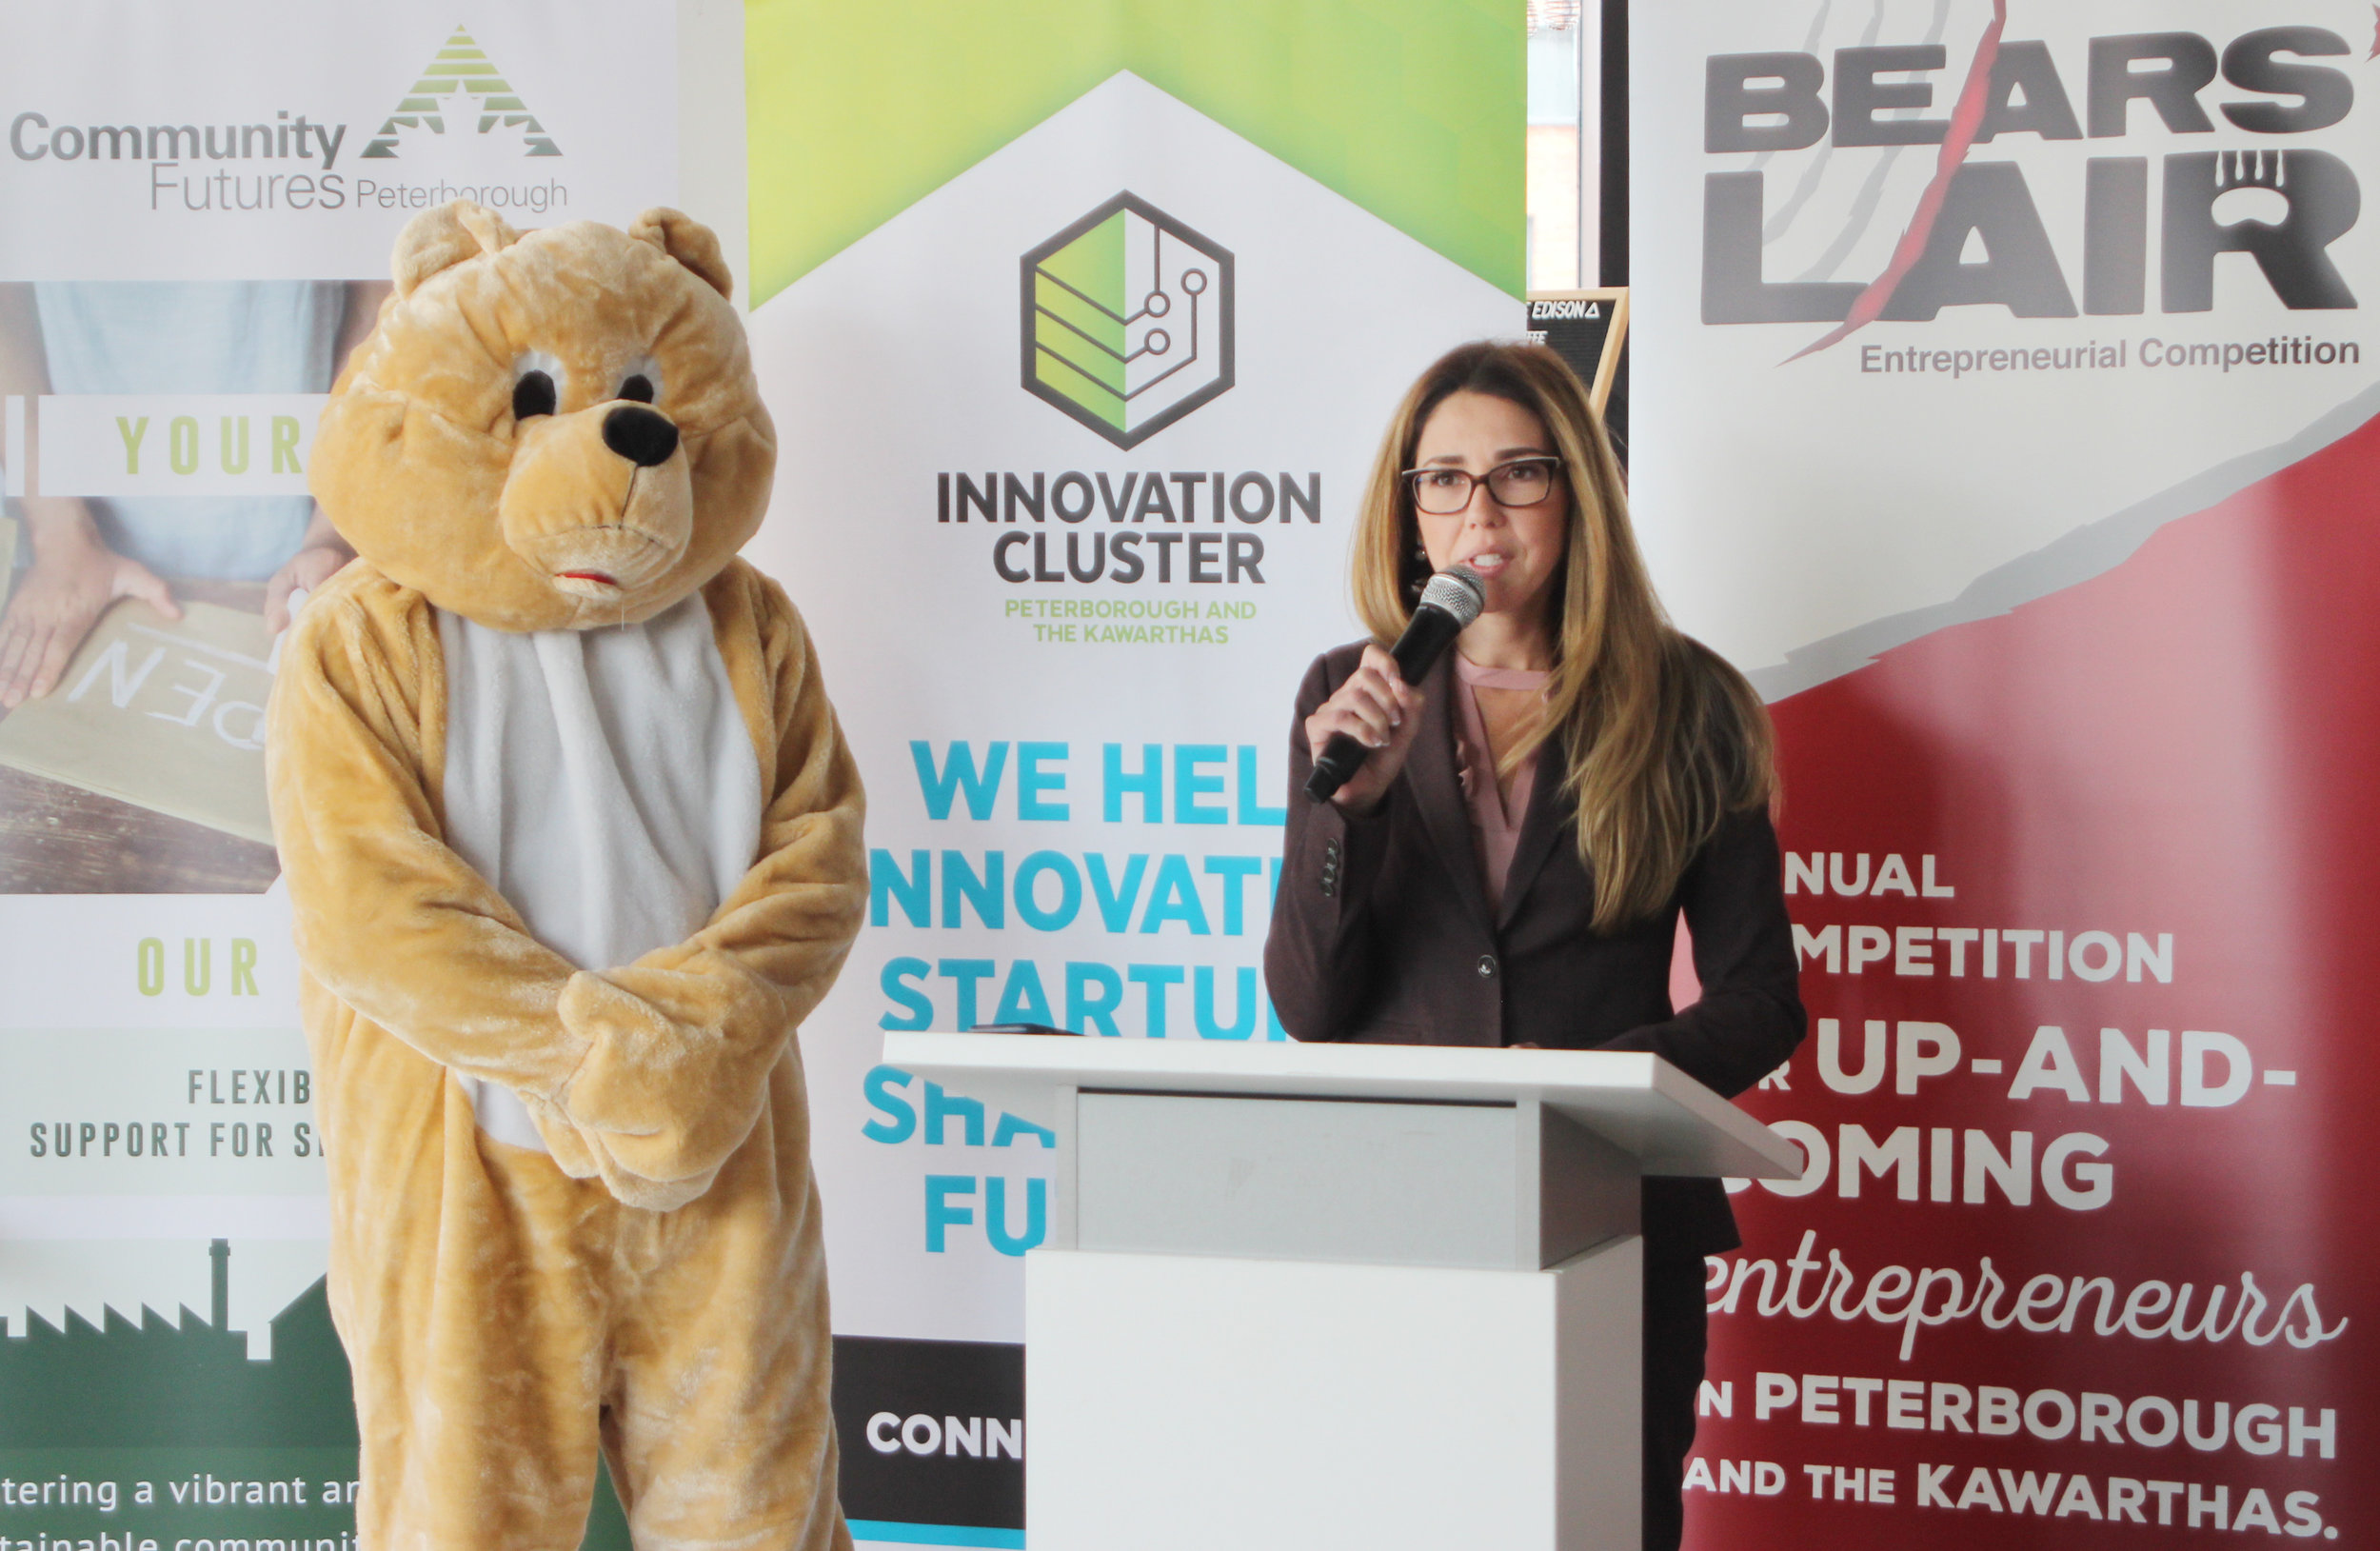 Bears' Lair Steering Committee Chair, Catia Skinner, announces details for the 2019 Bears' Lair Entrepreneurial Competition on Tuesday, January 22nd, at VentureNorth.